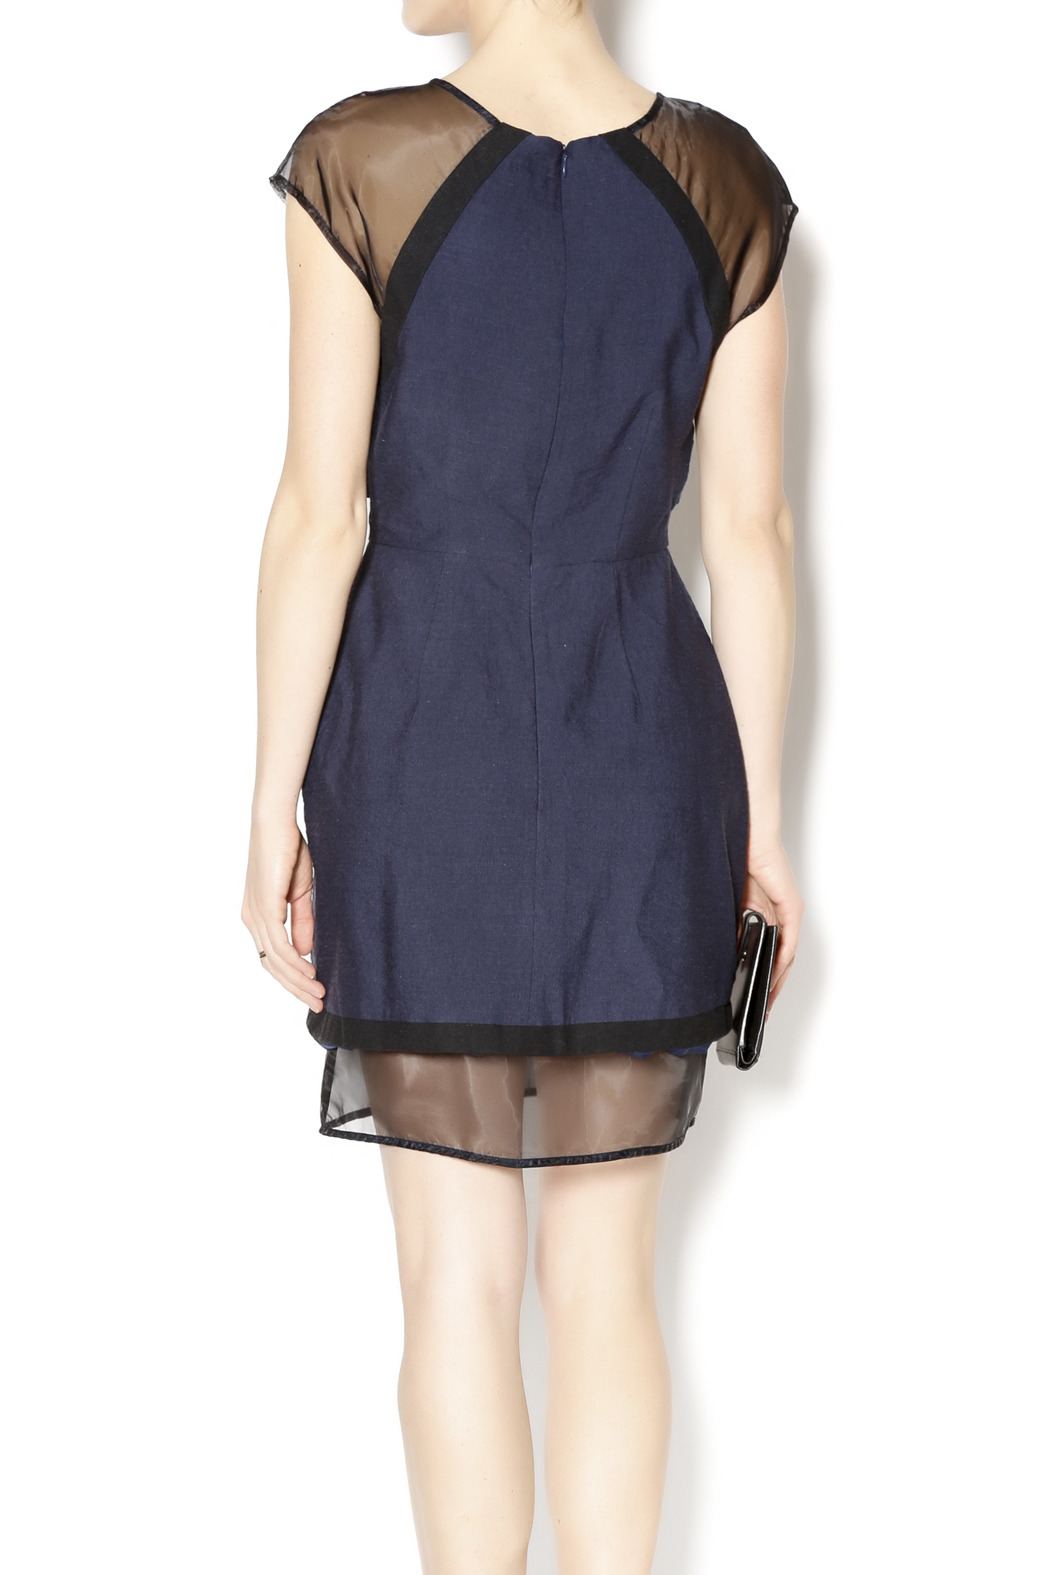 C/MEO COLLECTIVE Navy and Sheer Dress - Back Cropped Image